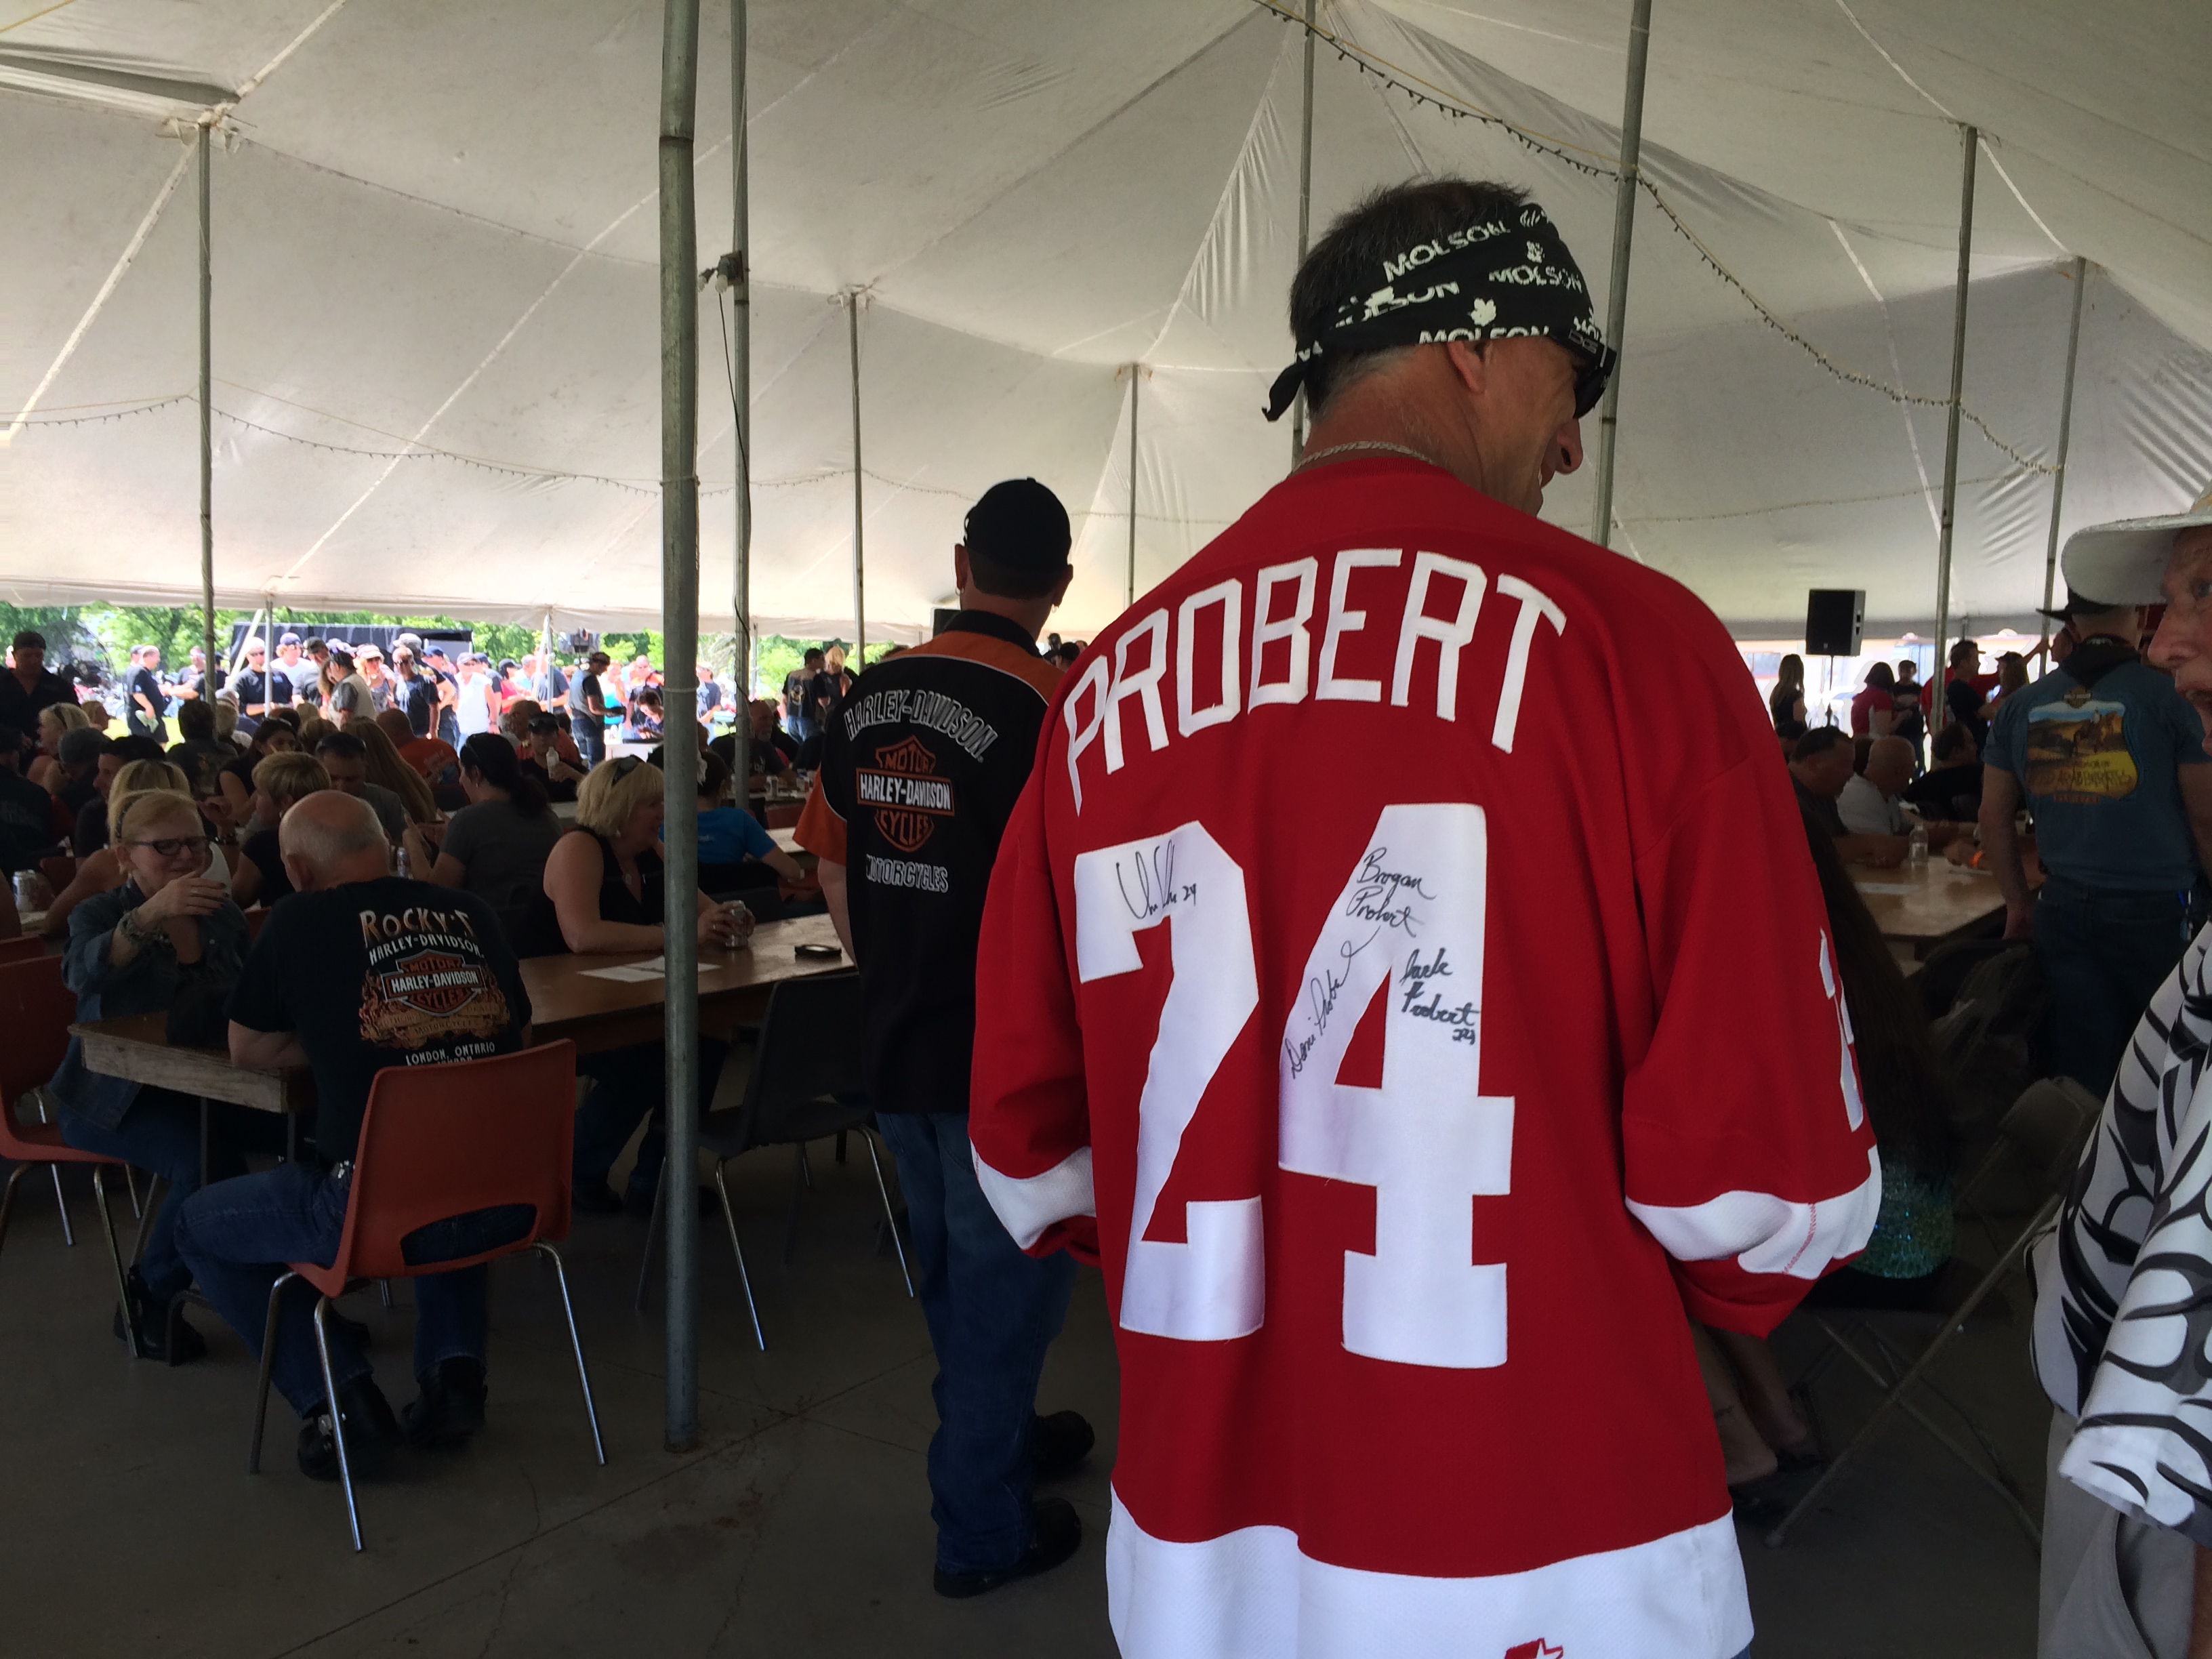 Riders at the Riverside Sportsmen Club for the last stop in the 4th annual Bob Probert Memorial Ride on June 22, 2014. (Photo by Ricardo Veneza)